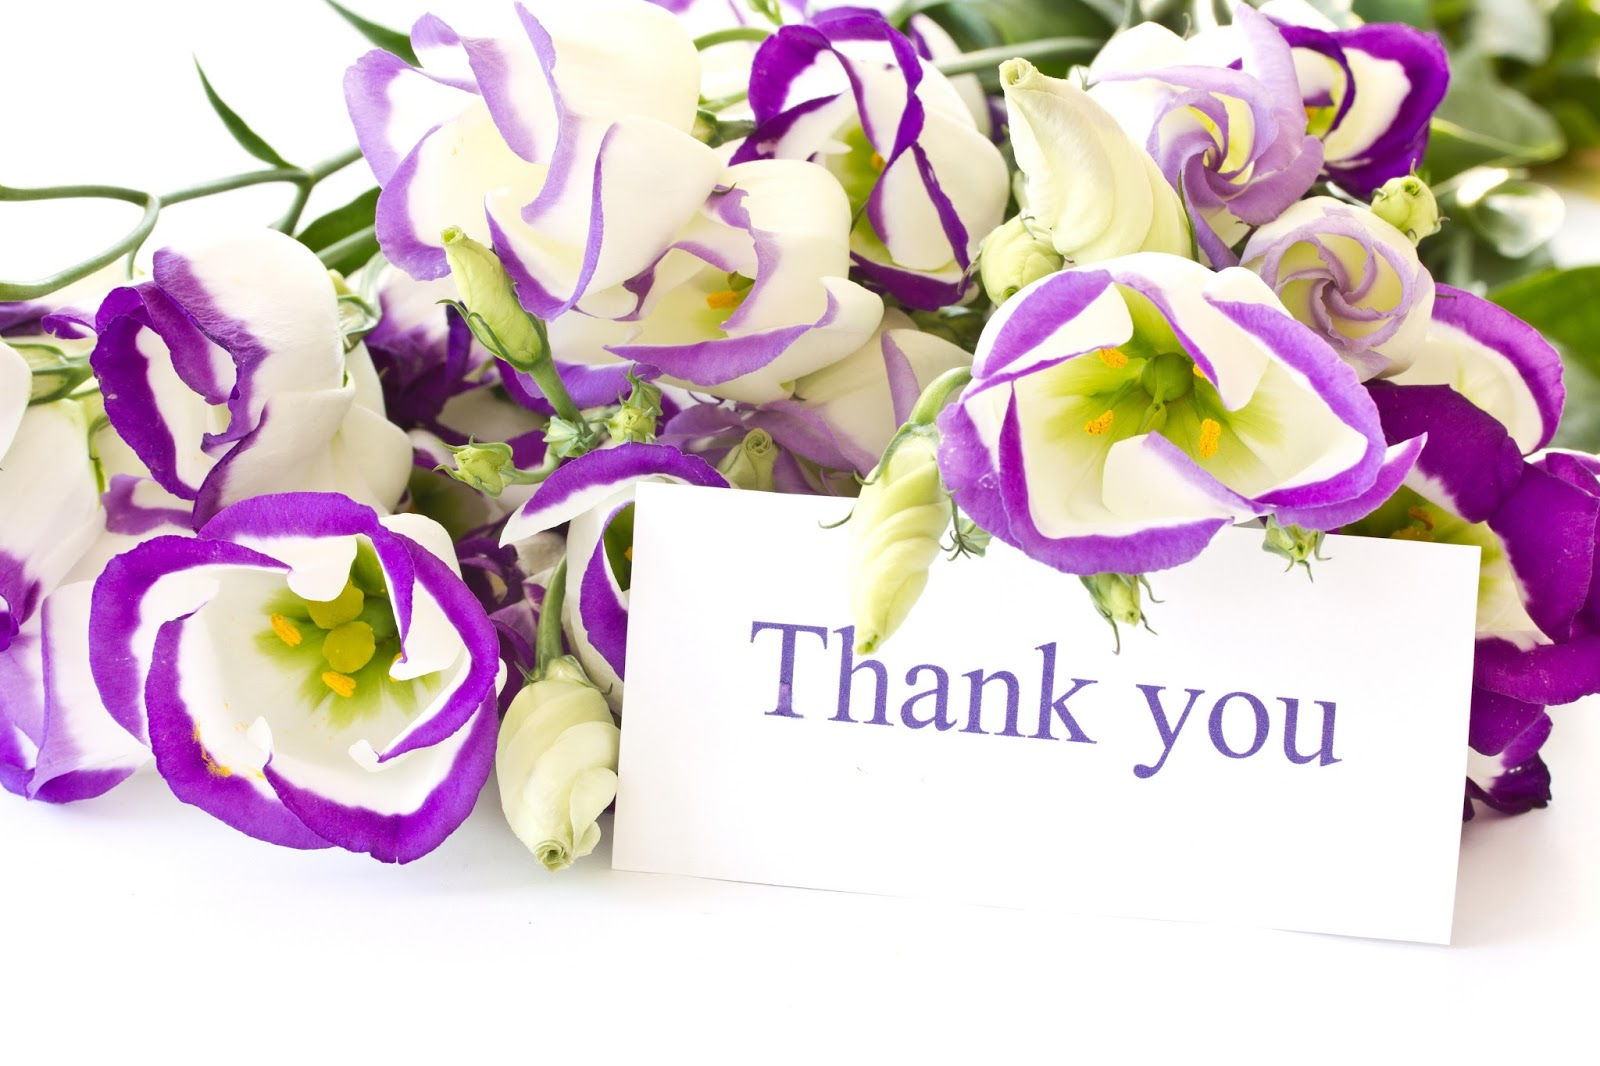 Thank You HD Pictures With Flowers